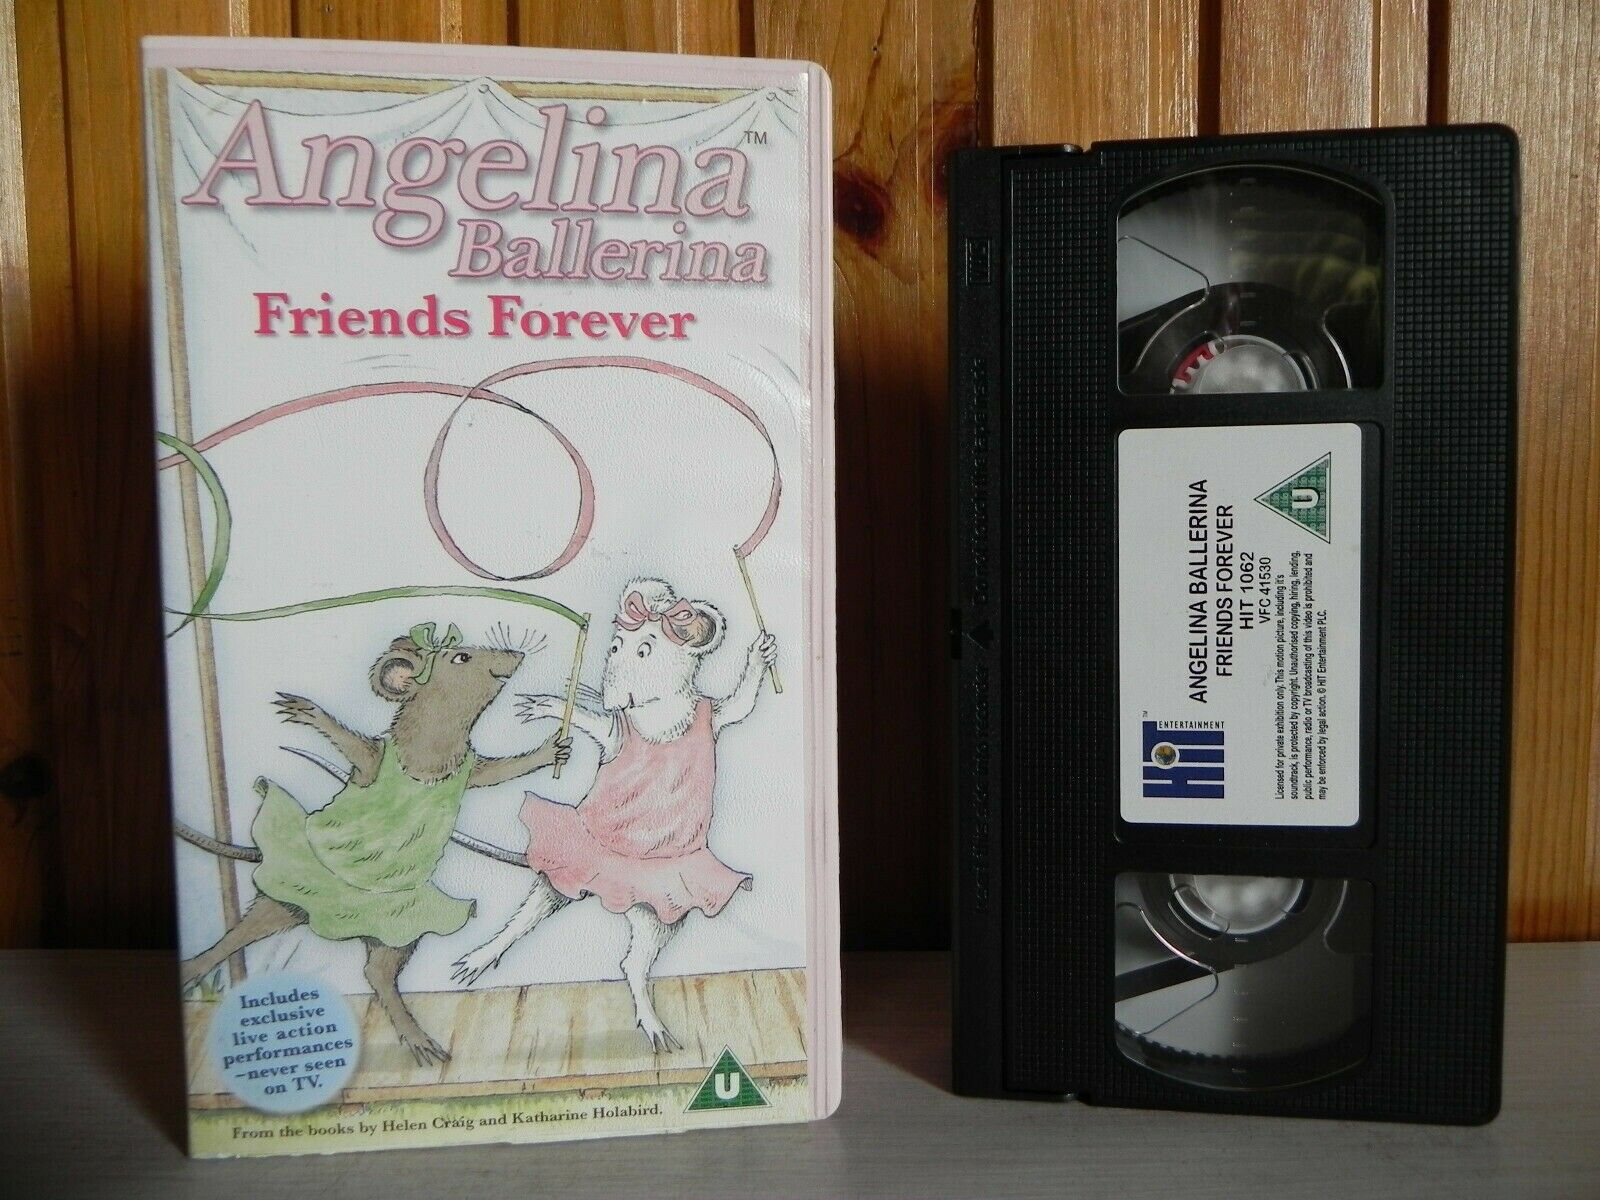 2003, Angelina, Angelina Ballerina, Ballerina, Cartoon, Children's & Family, Children's T.V. Series, Entertainment, Forever, Friends, Hit, Judi Dench, Katharine Holabird, Kids, PAL, U, United Kingdom, VHS